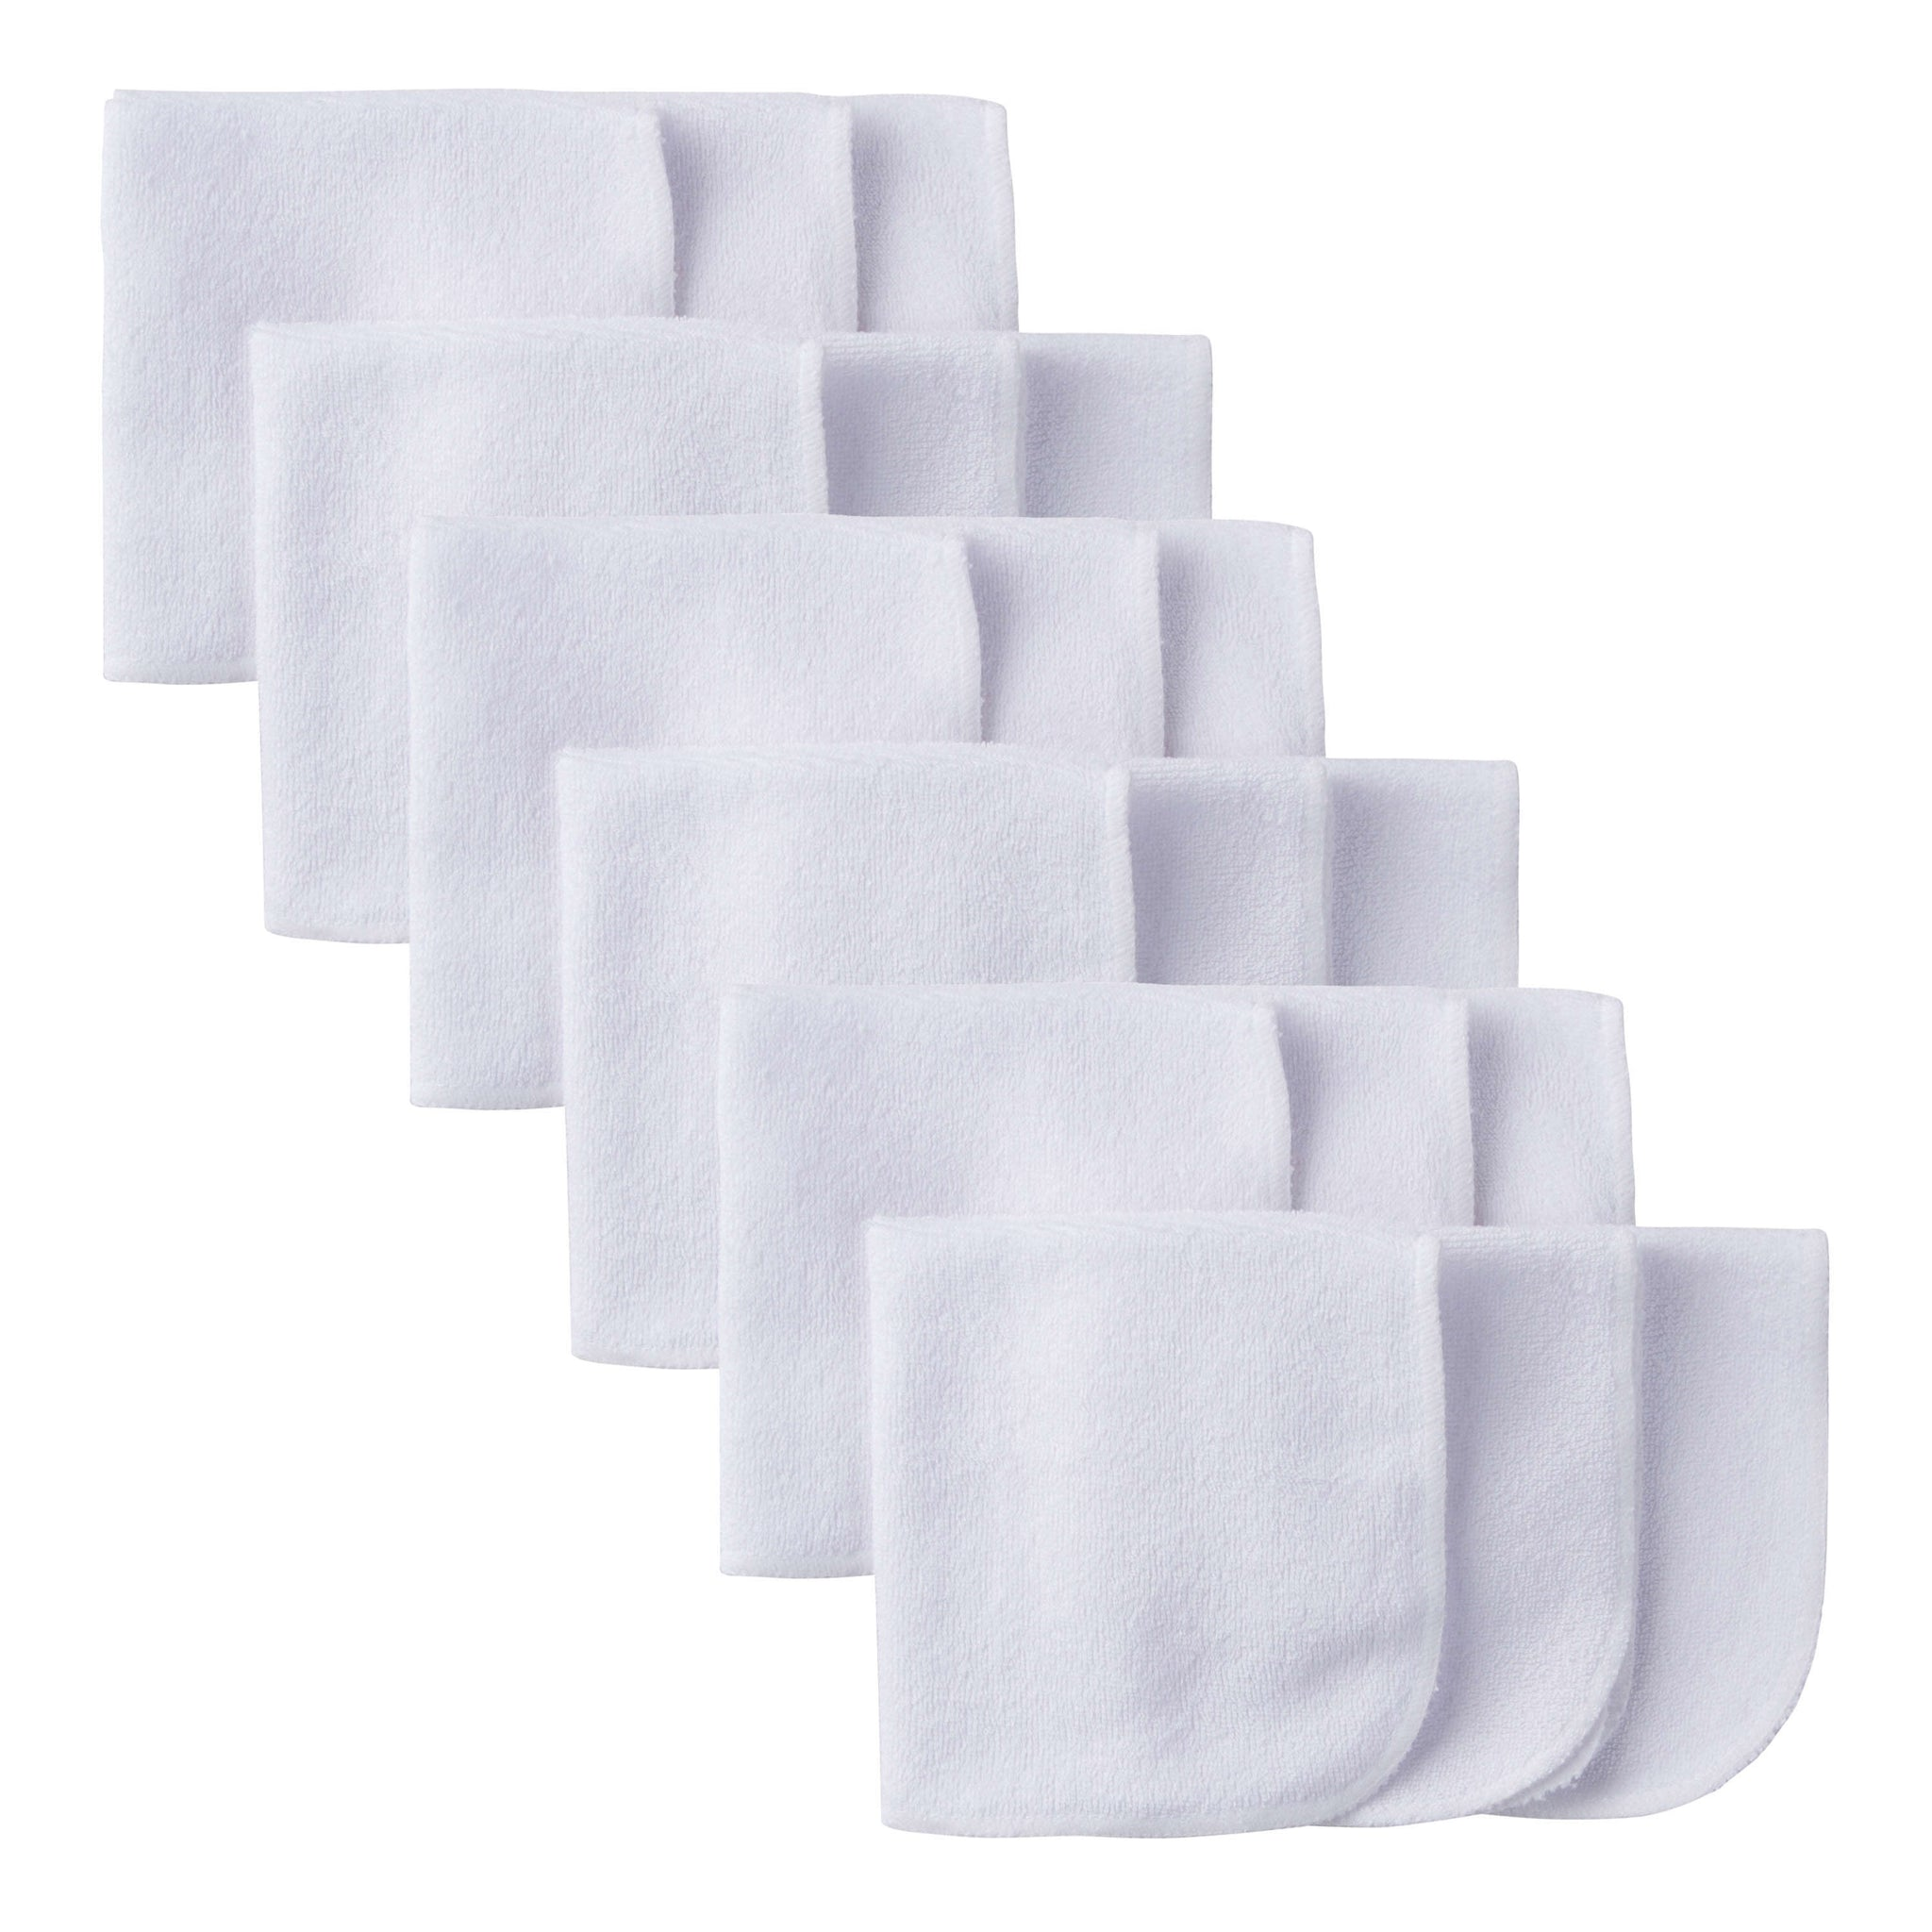 18-Pack White Terry Washcloths